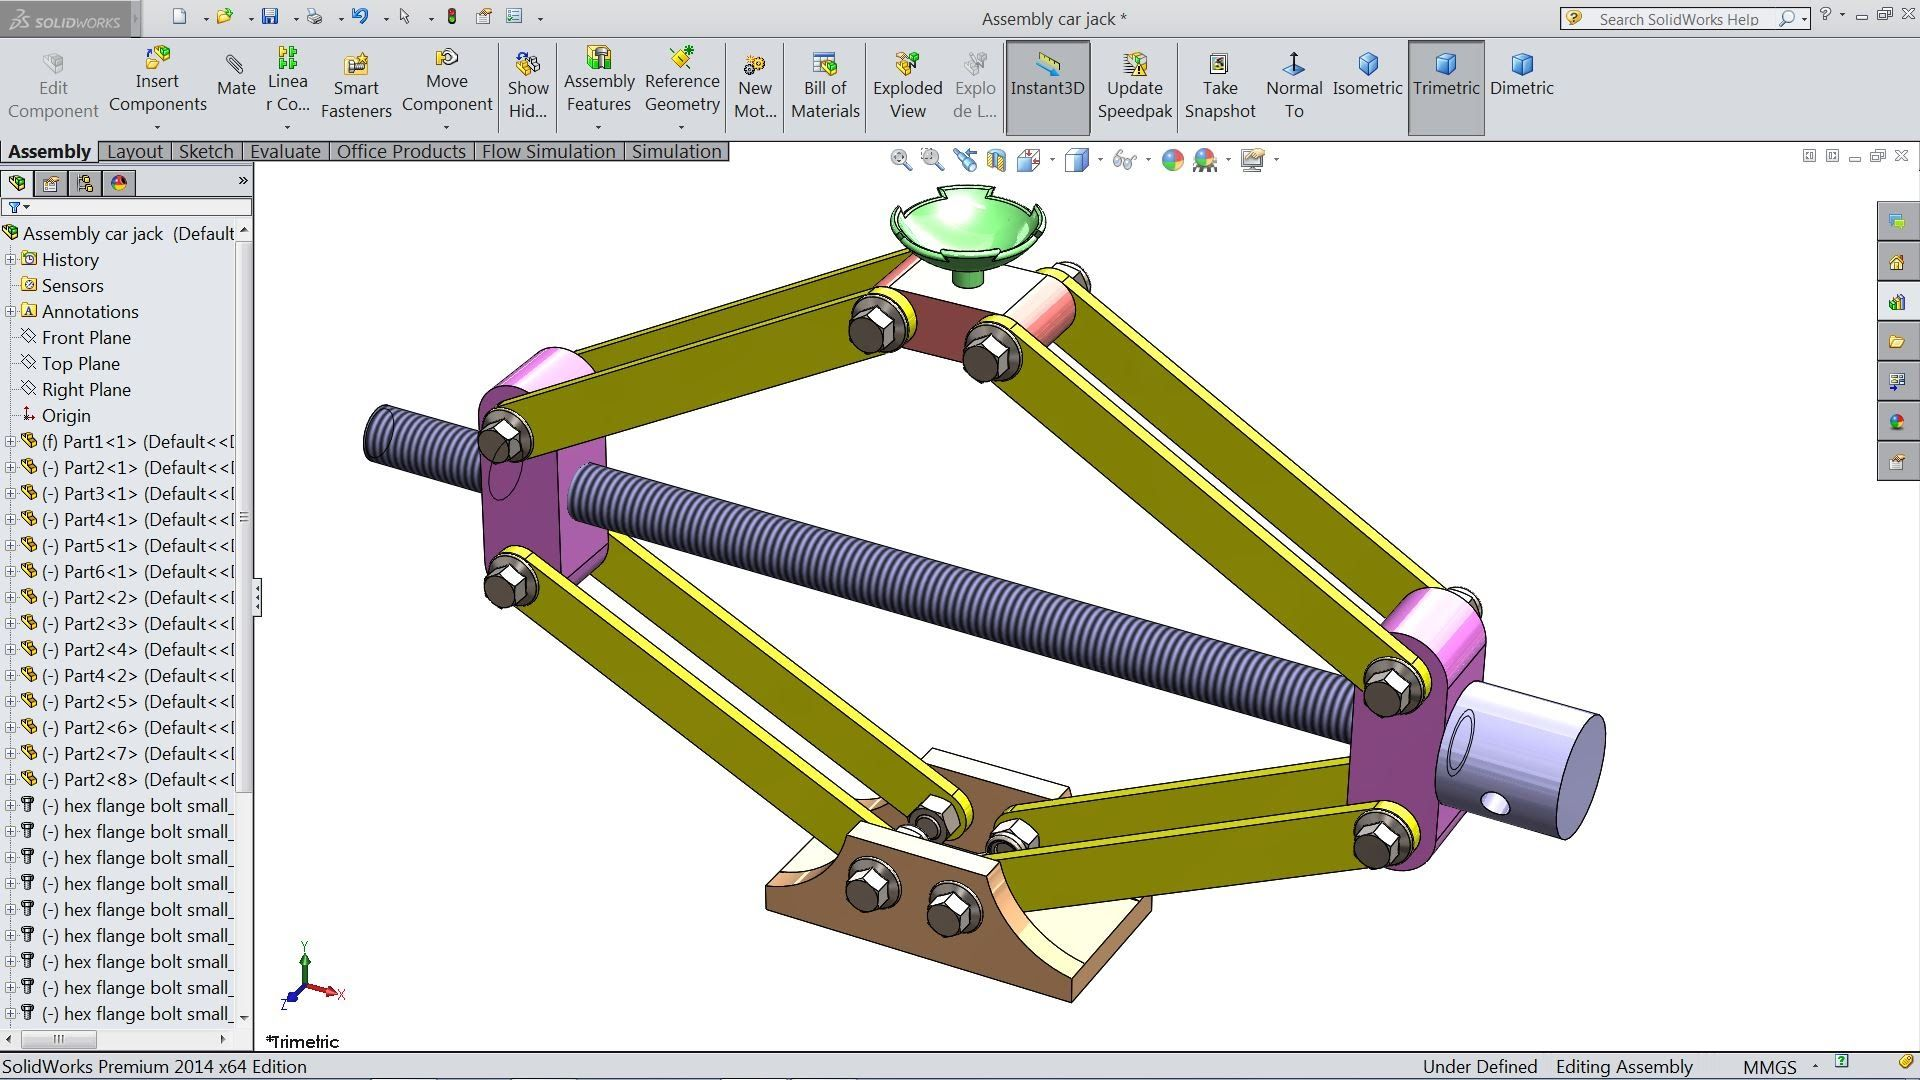 solidworks tutorial design and assembly of car jack in solidworks rh pinterest com Engineering Drawing SolidWorks SolidWorks Dimension Settings